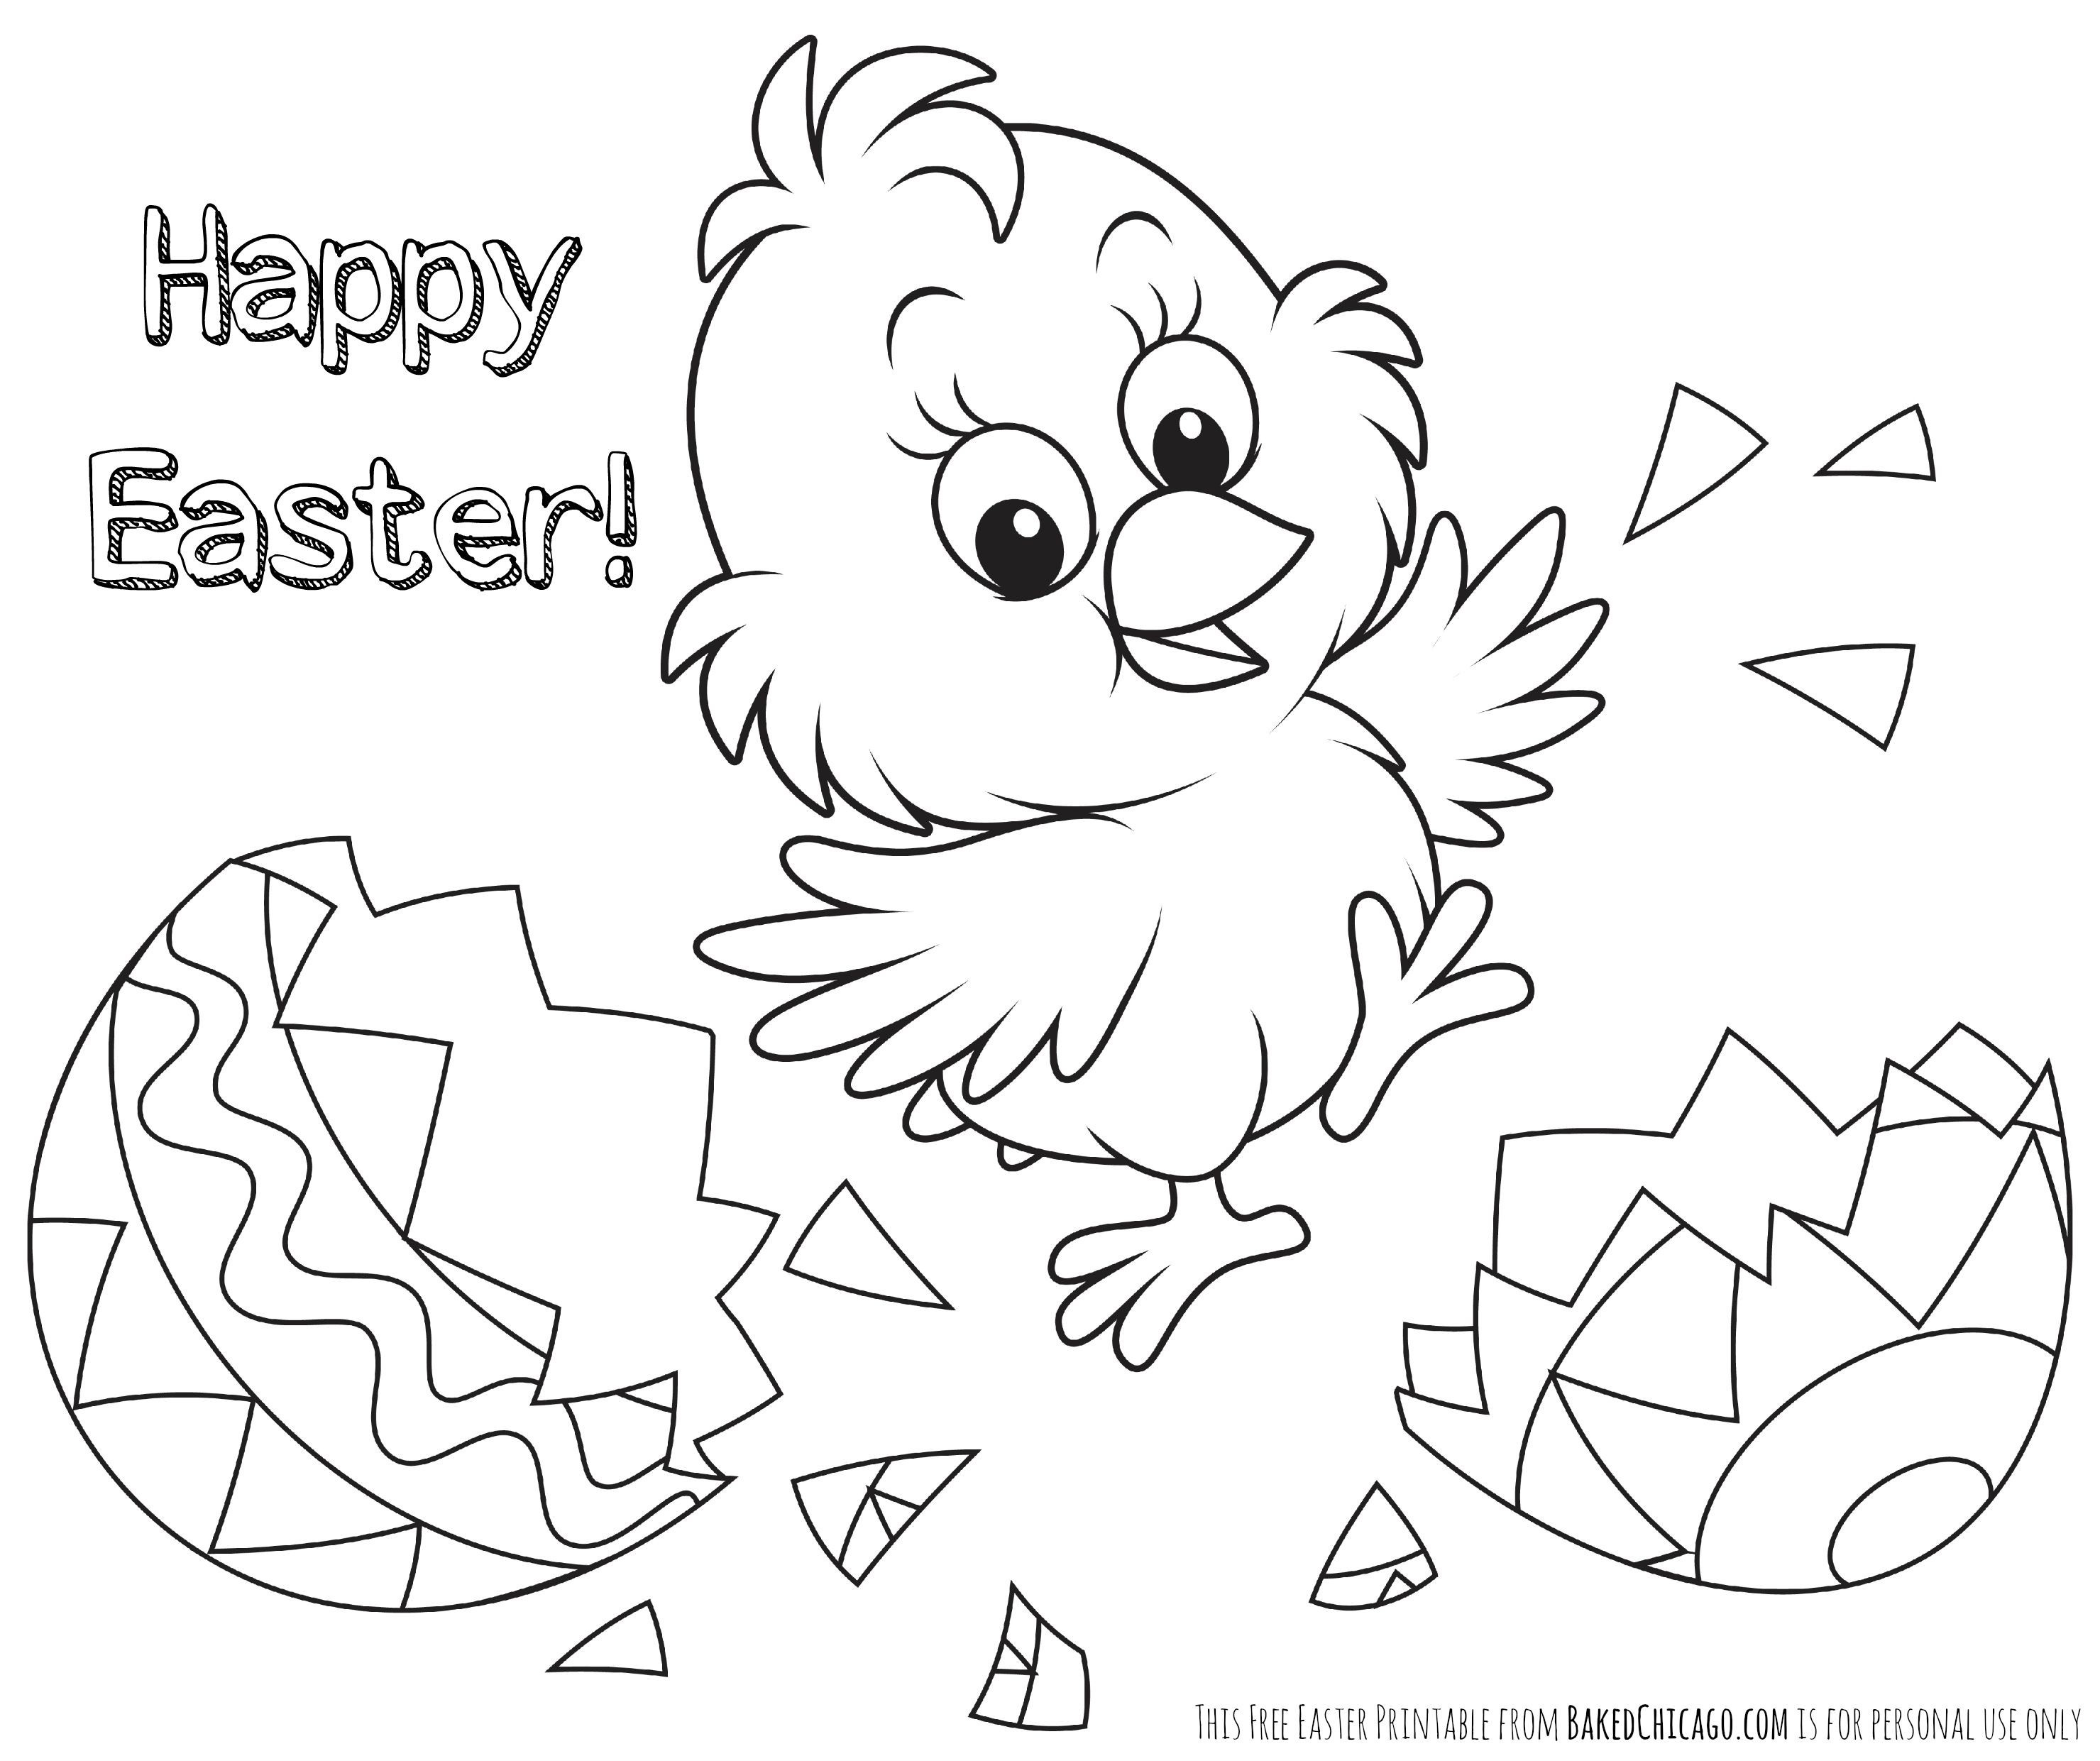 12 Free Printable Easter Coloring Pages | Topsailmultimedia - Coloring Pages Free Printable Easter